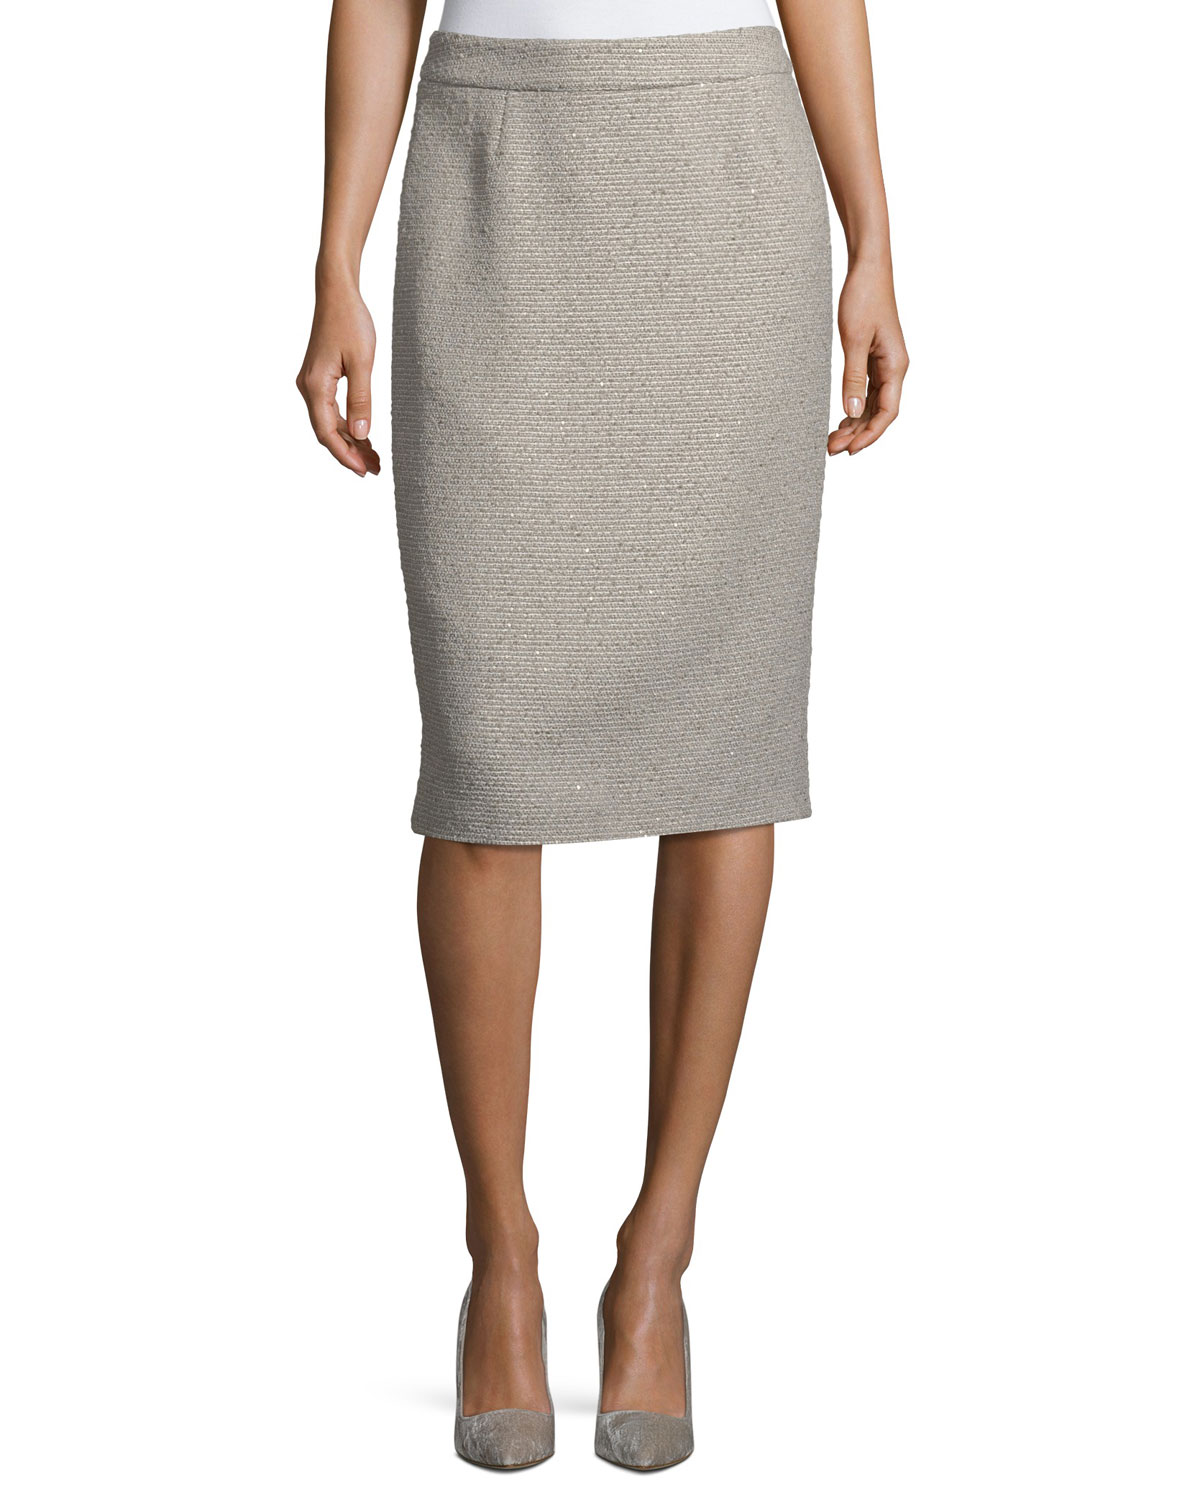 Ravas Sequined Tweed Pencil Skirt